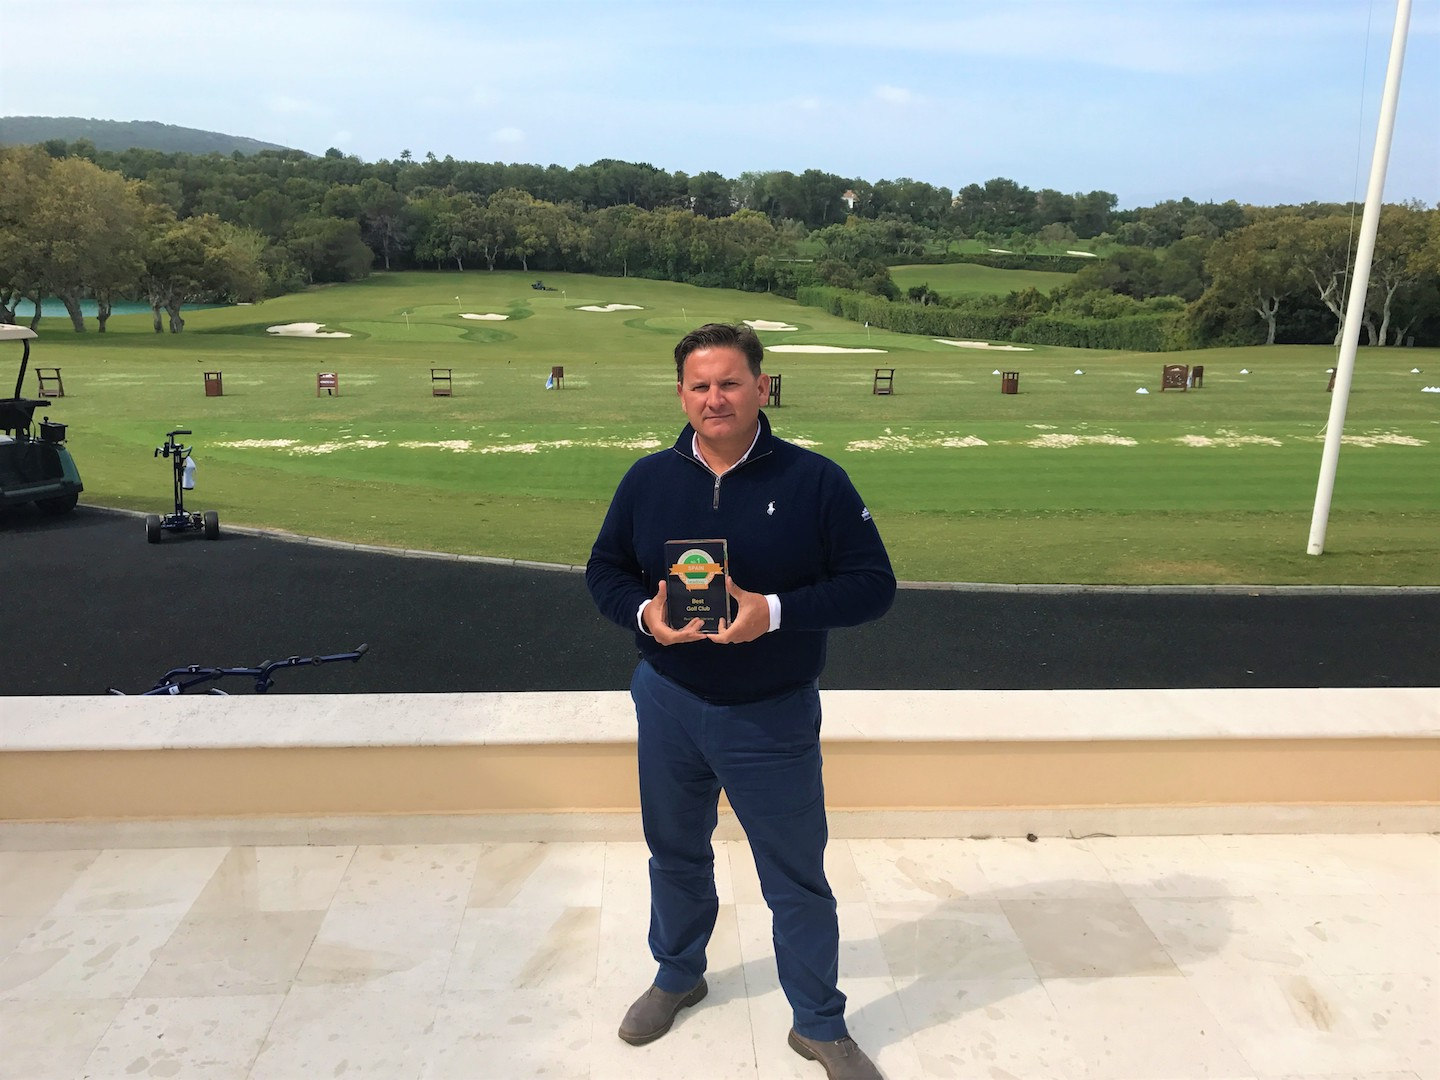 Real Club Valderrama wins best GC in Spain